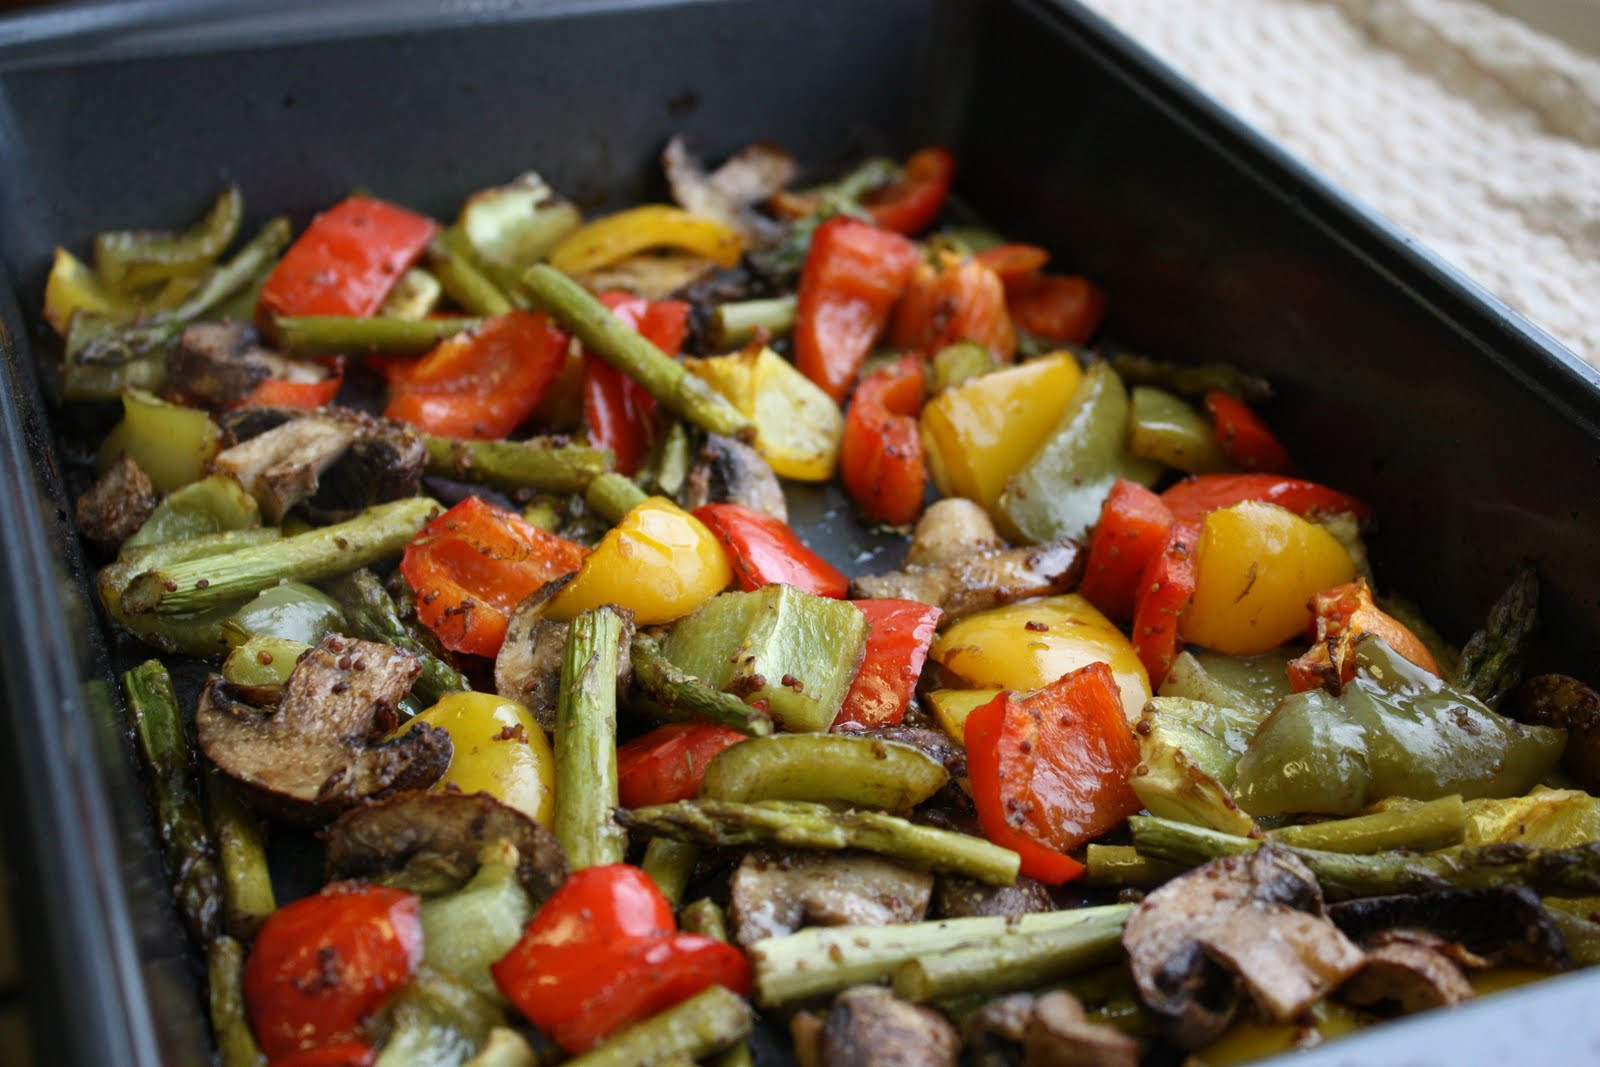 Healthy Roasted Vegetables Recipe  Balsamic Dijon Roasted Ve ables Get f Your Tush and